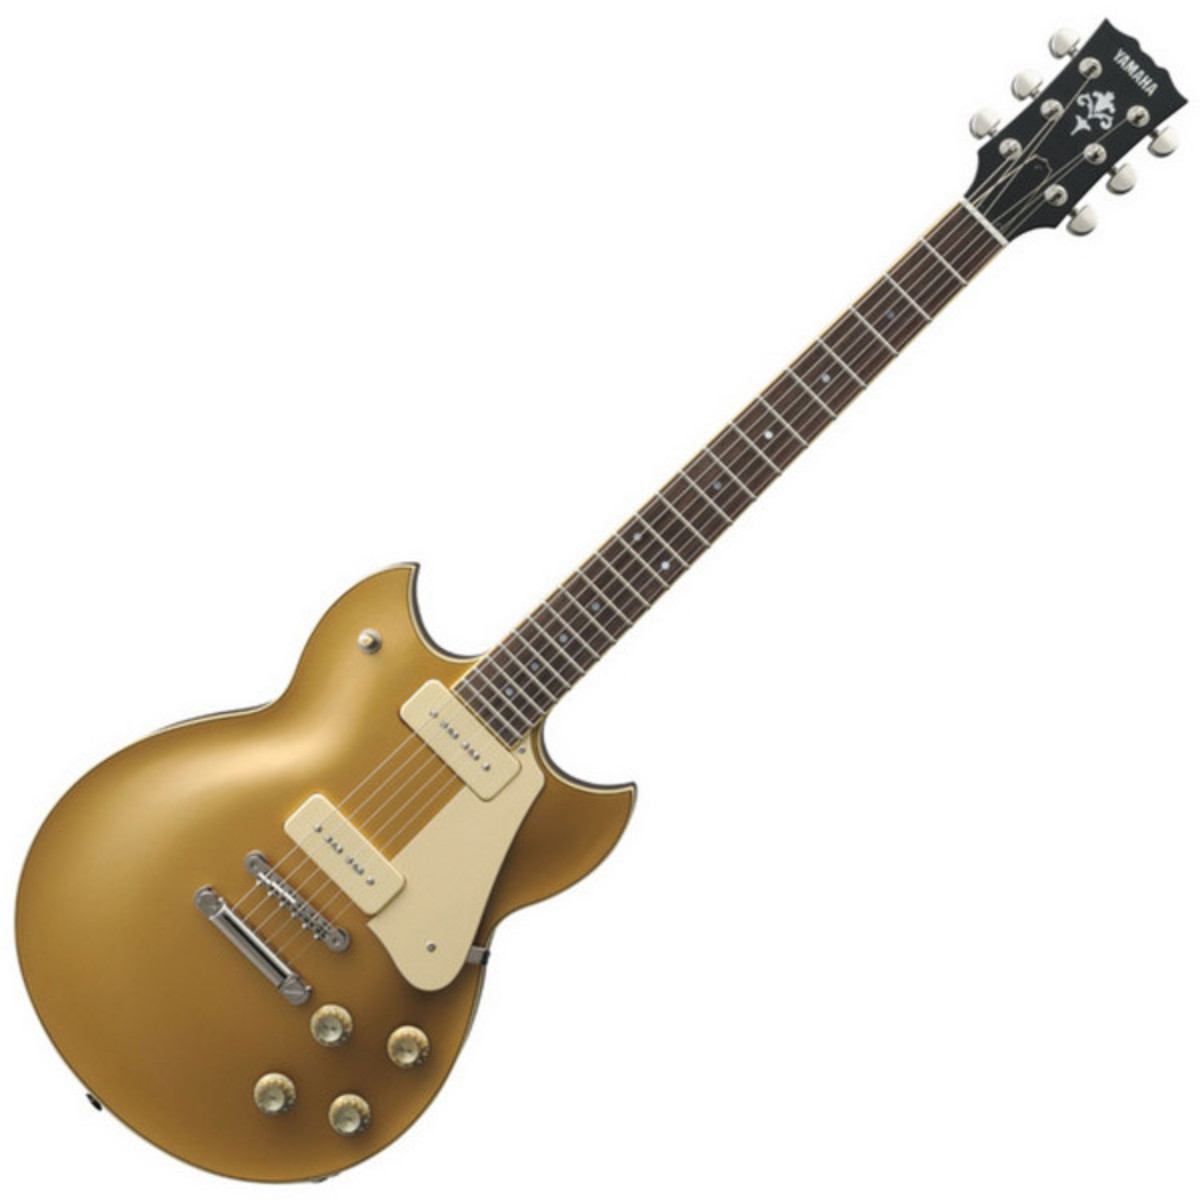 yamaha sg1802 sg vintage electric guitar gold top at. Black Bedroom Furniture Sets. Home Design Ideas